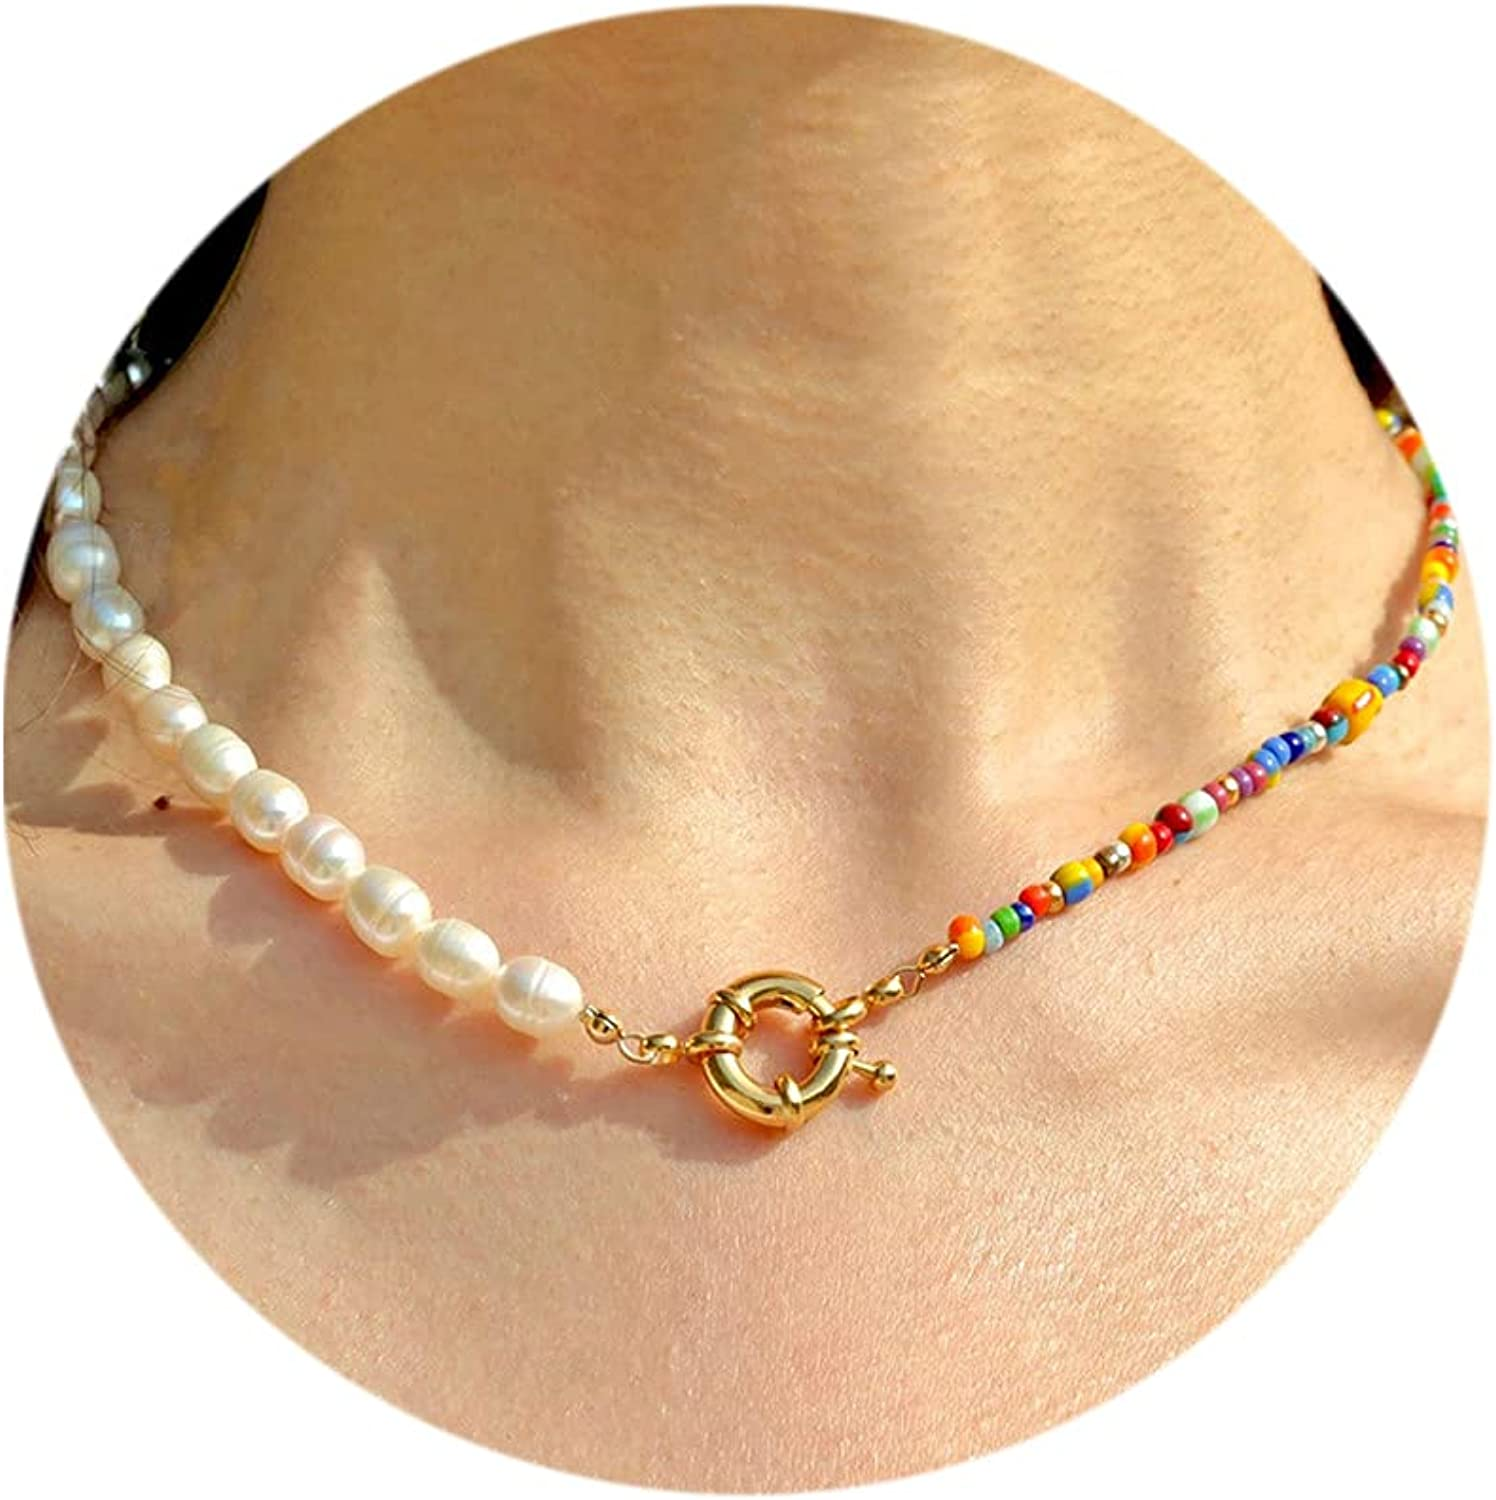 Bead Pearl Choker Necklace and Bracelet Set for Women Girls Handmade Colorful Seed Beaded Choker Bohemian Y2K Necklace for Women